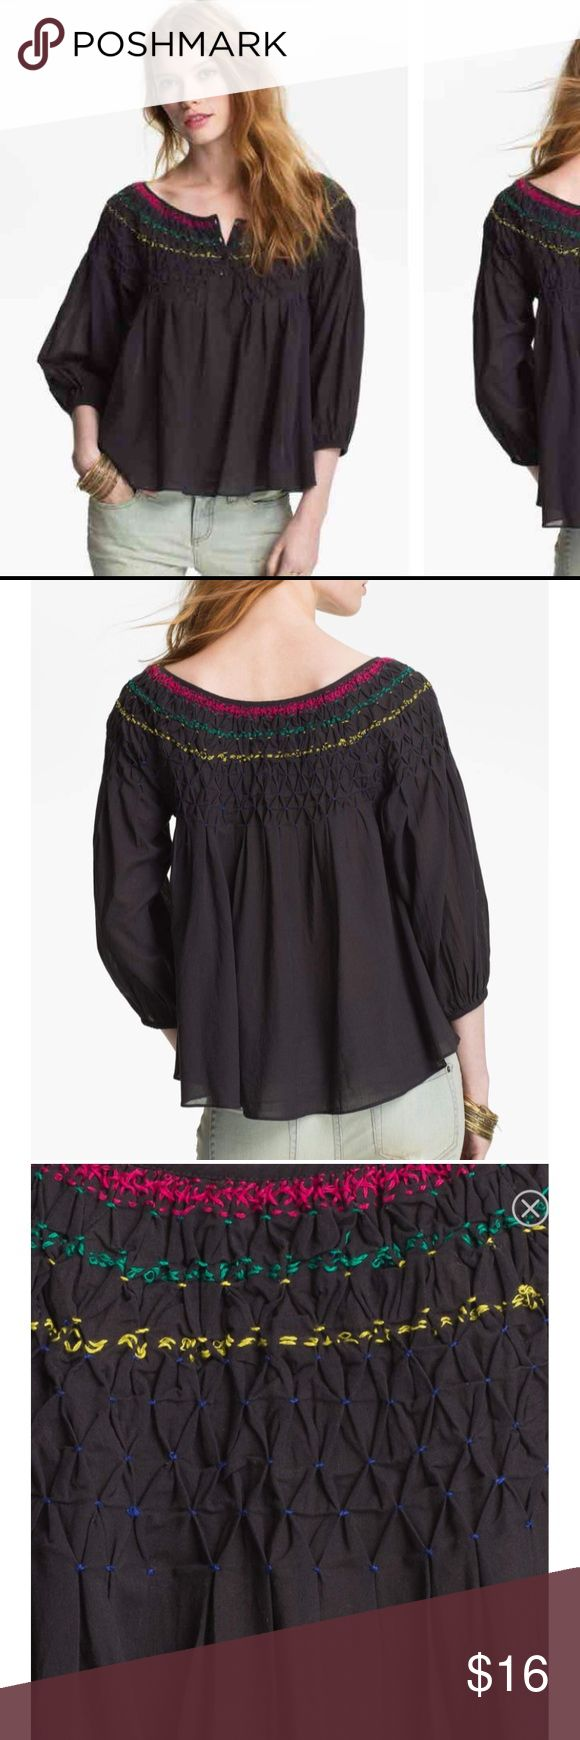 Free People Embroidered boho peasant blouse Hand-hewn embroidery accents the diamond-smocked yoke that volumizes a soft peasant blouse. Lantern sleeves provide the perfect complement to the airy silhouette.  •Blouse was never worn and still has tags attached. •Some of the stitching is a bit loose and one stitch came apart (see last pic). I purchased it this way from Nordstrom rack. Overall, the top is still in good condition and this detail does not effect the style or look of the top!  •The…